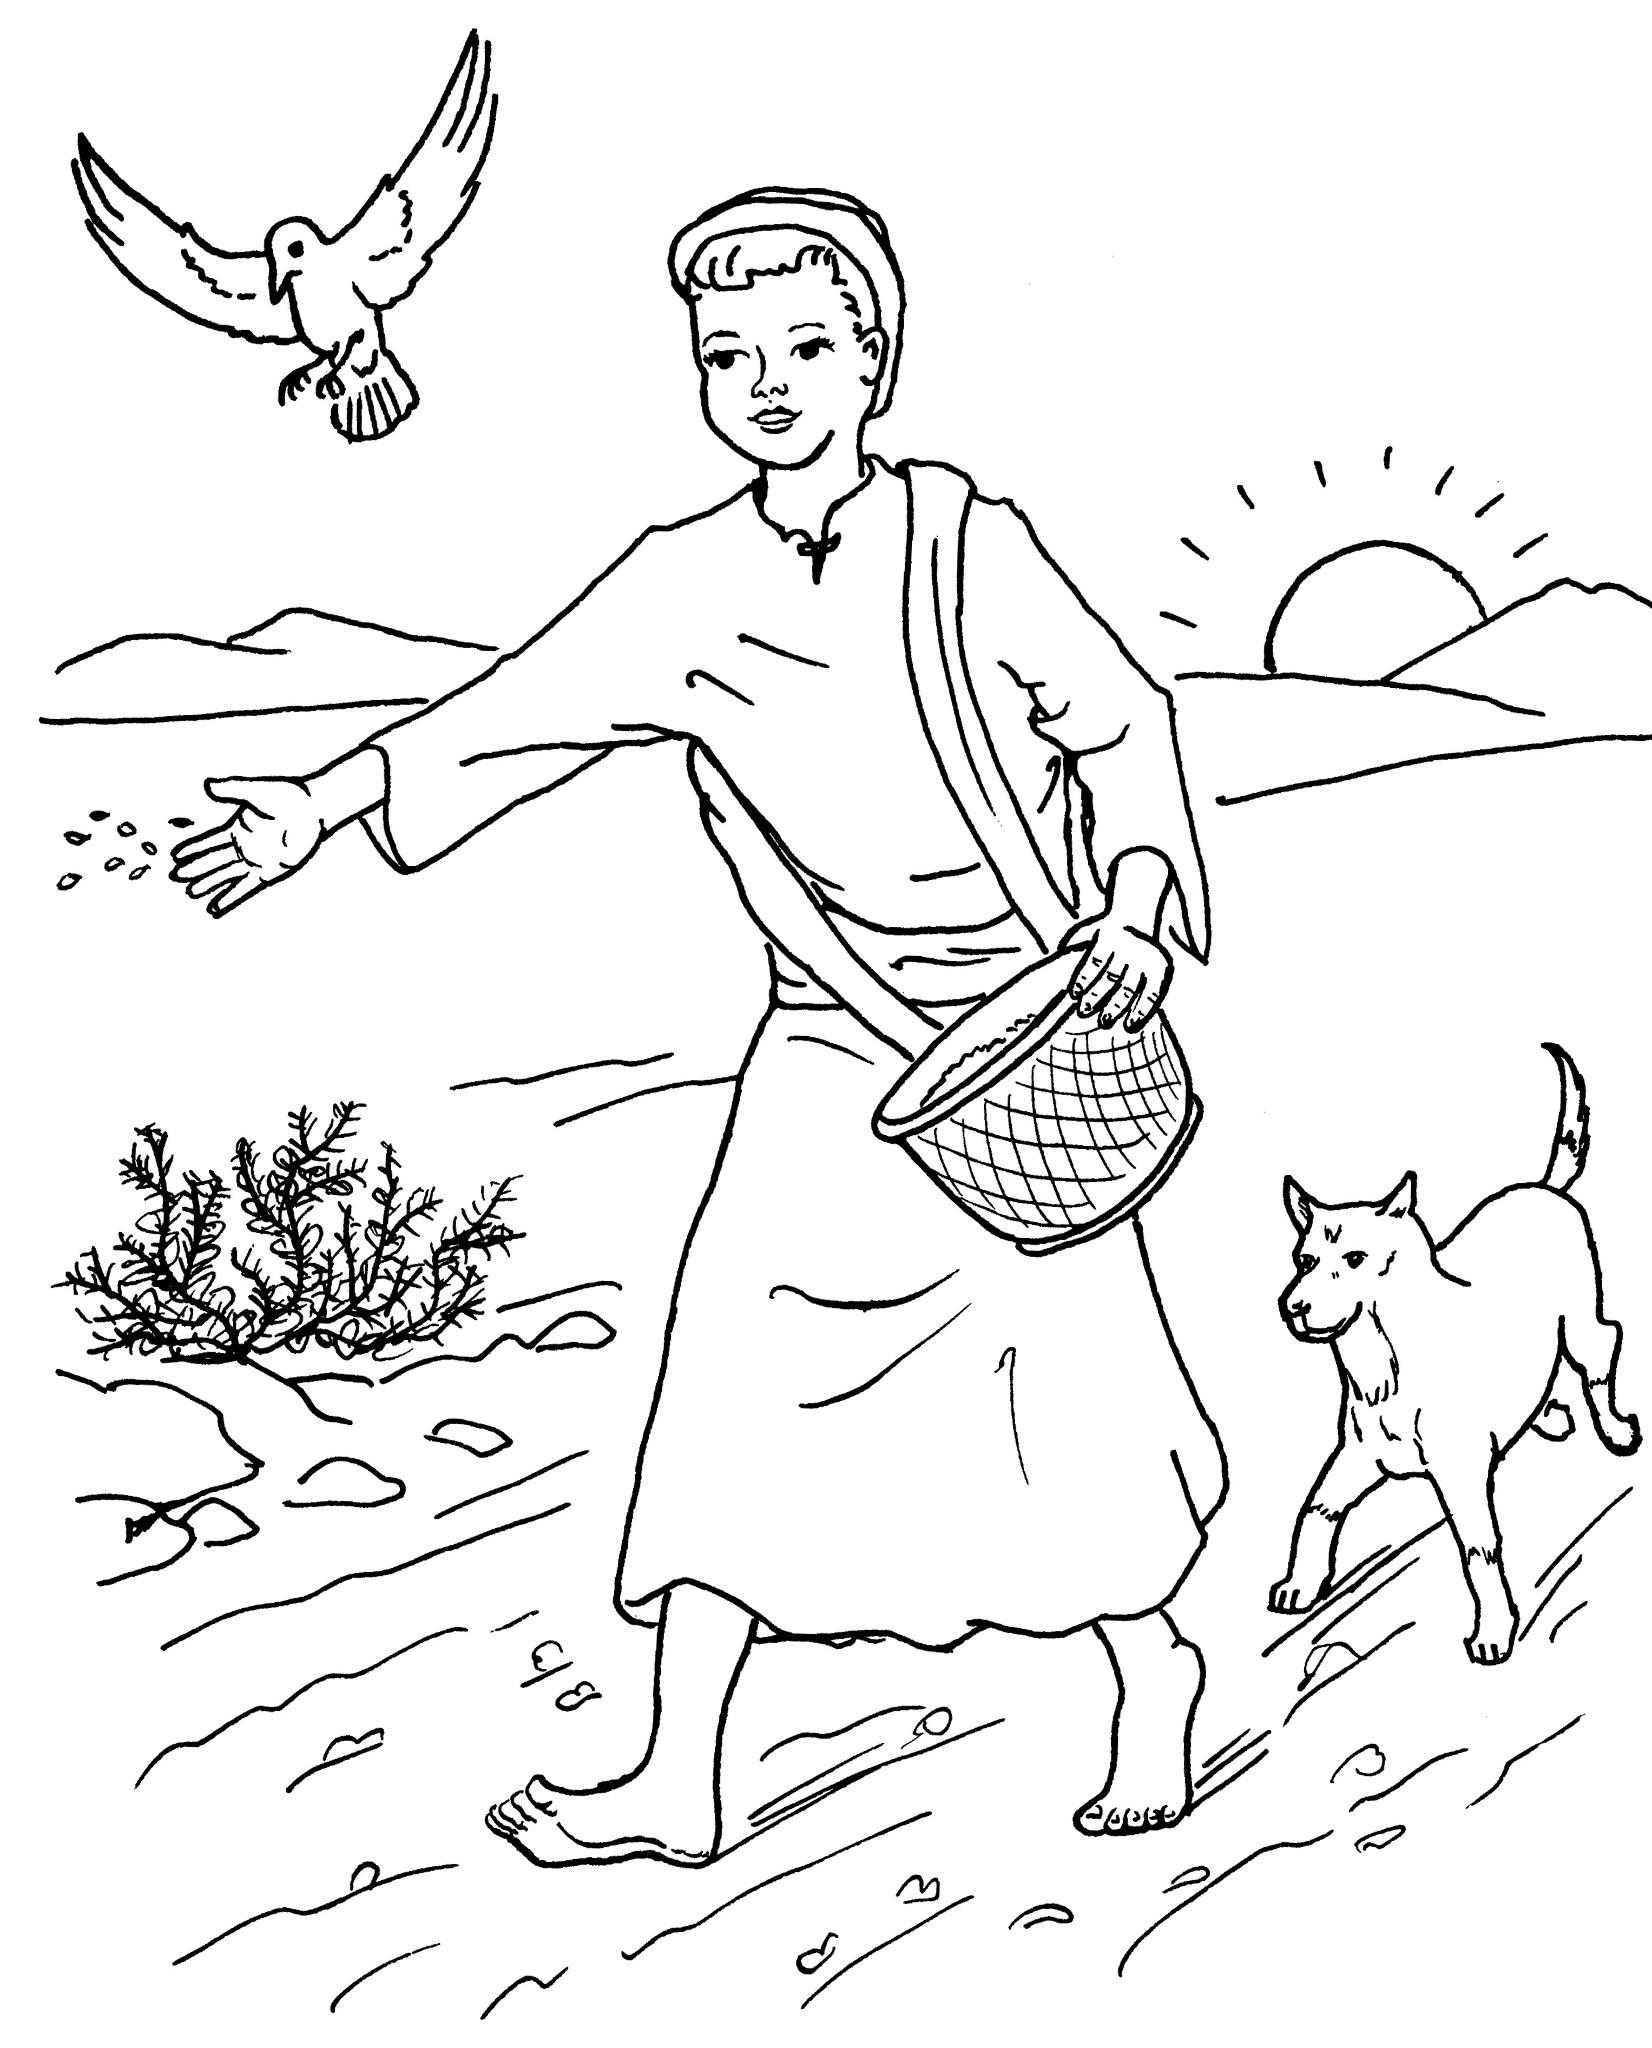 coloring pages seeds soil - photo#28